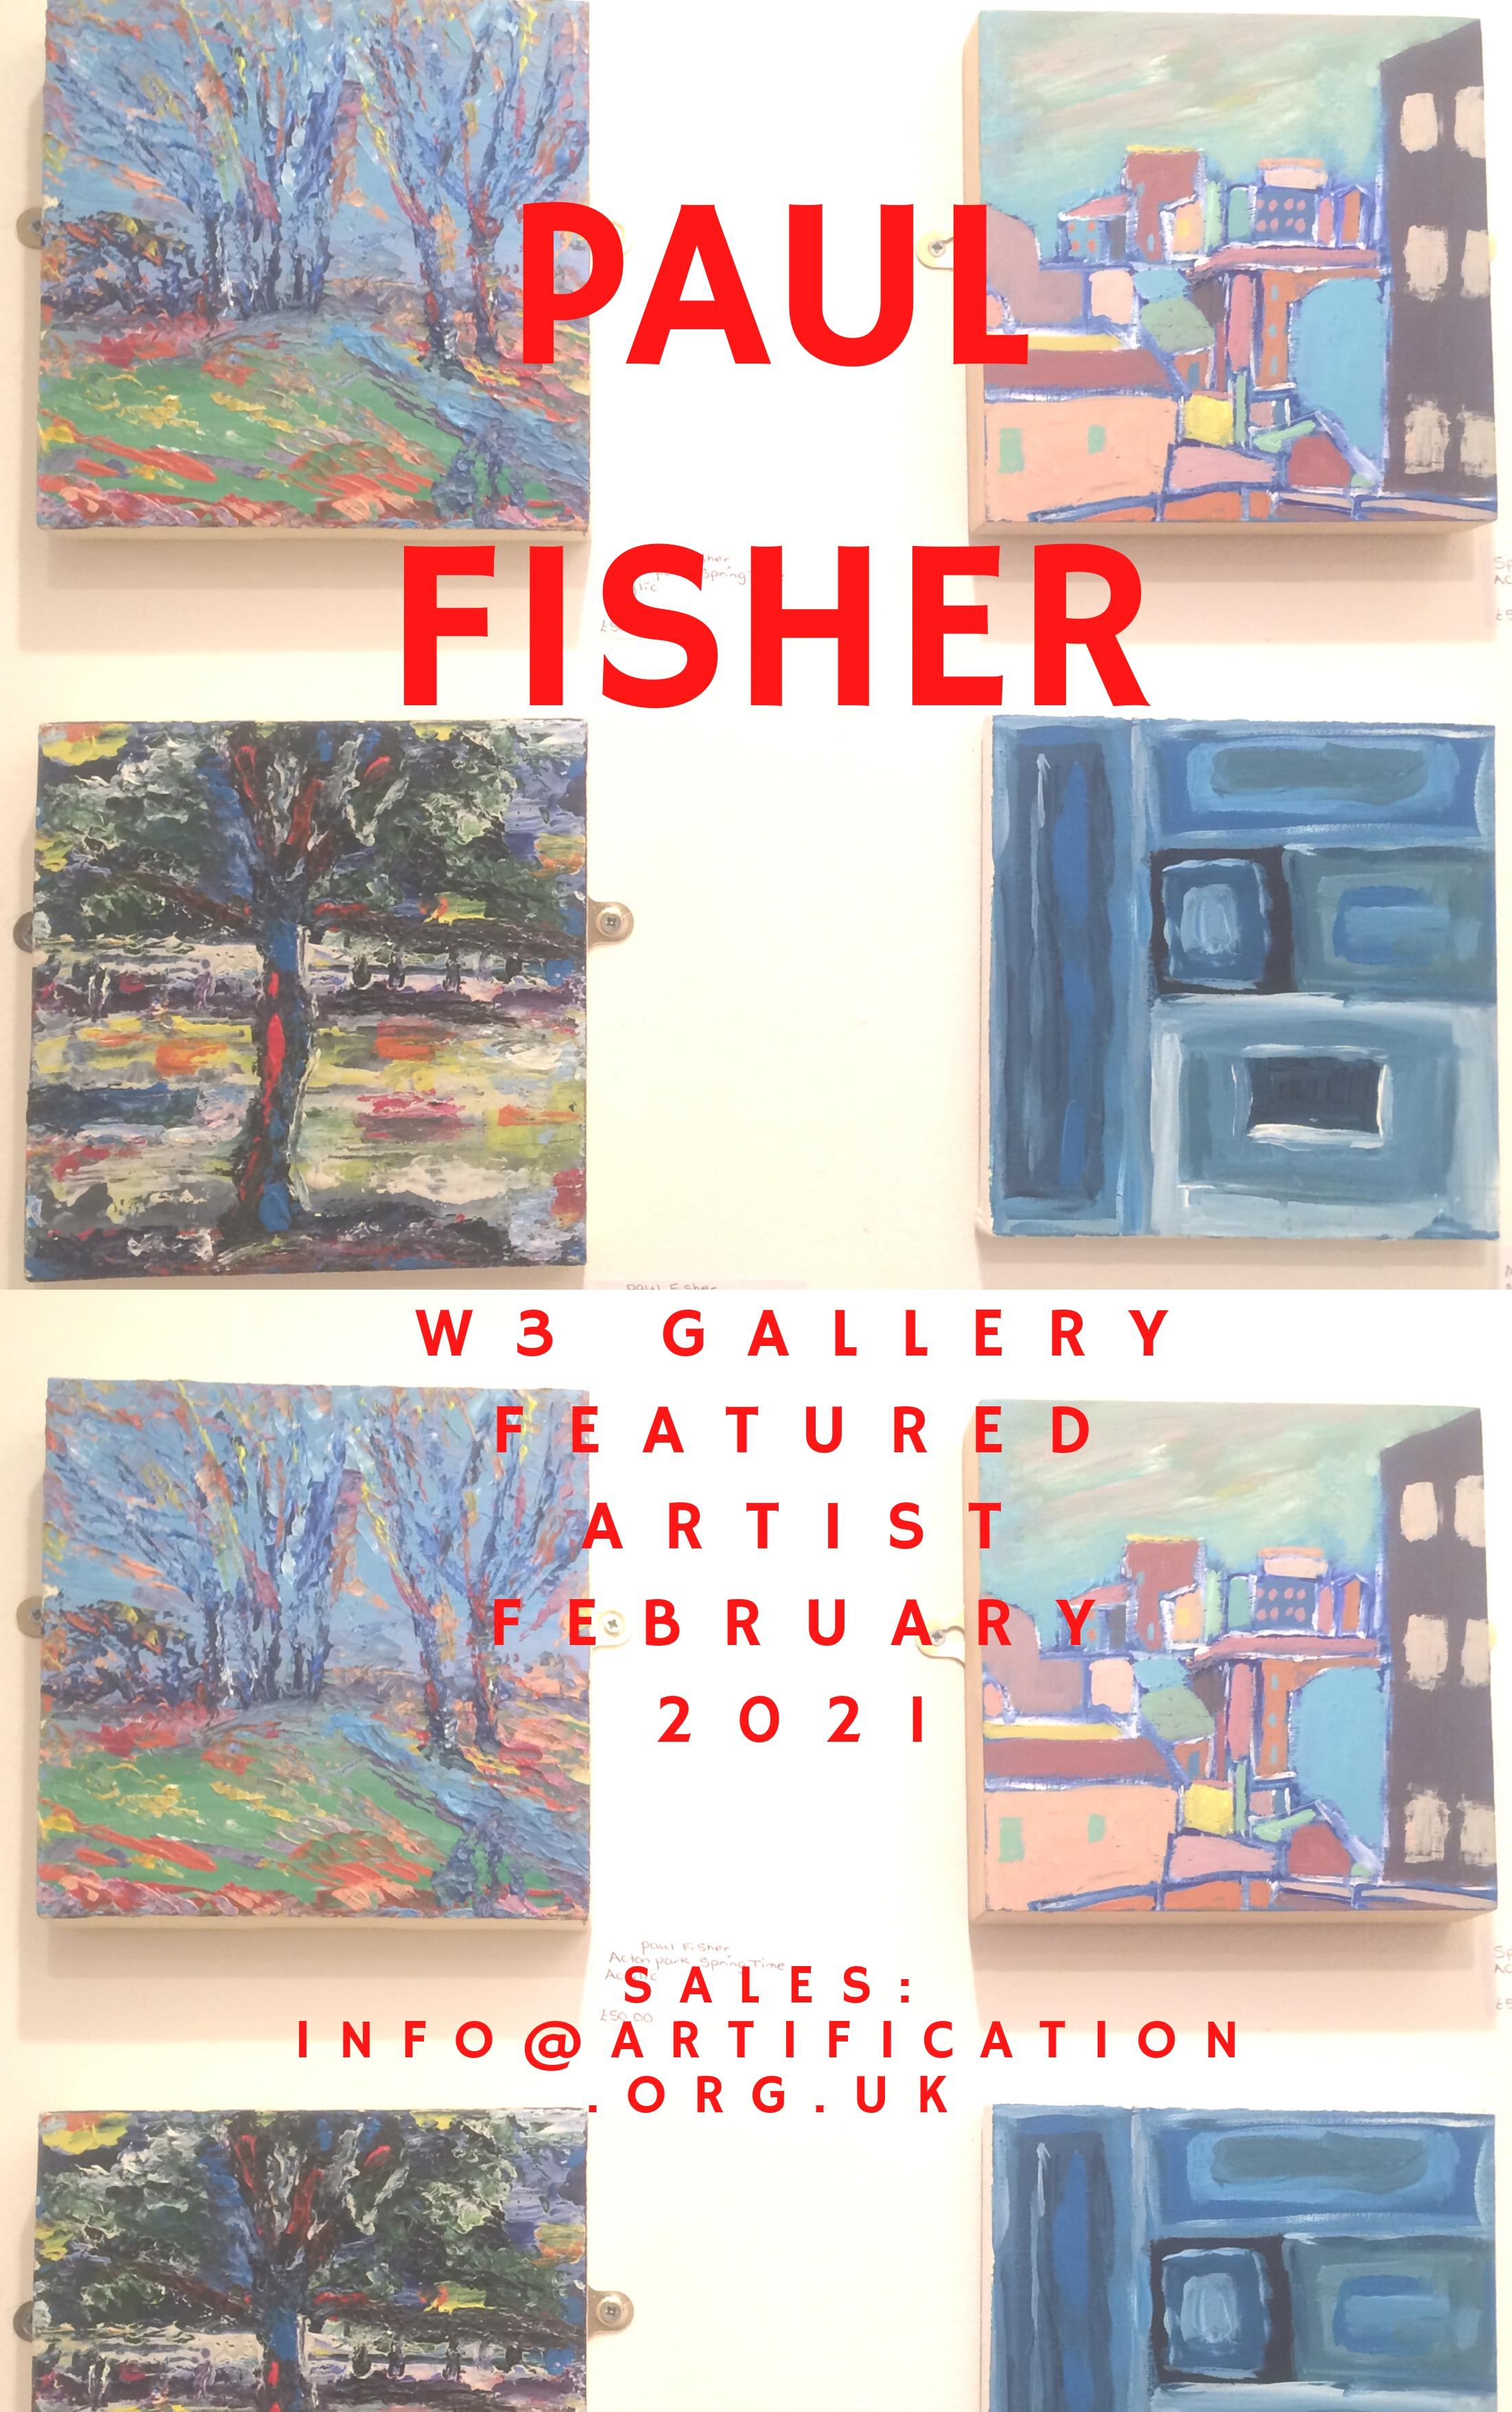 Paul Fisher solo art exhibition